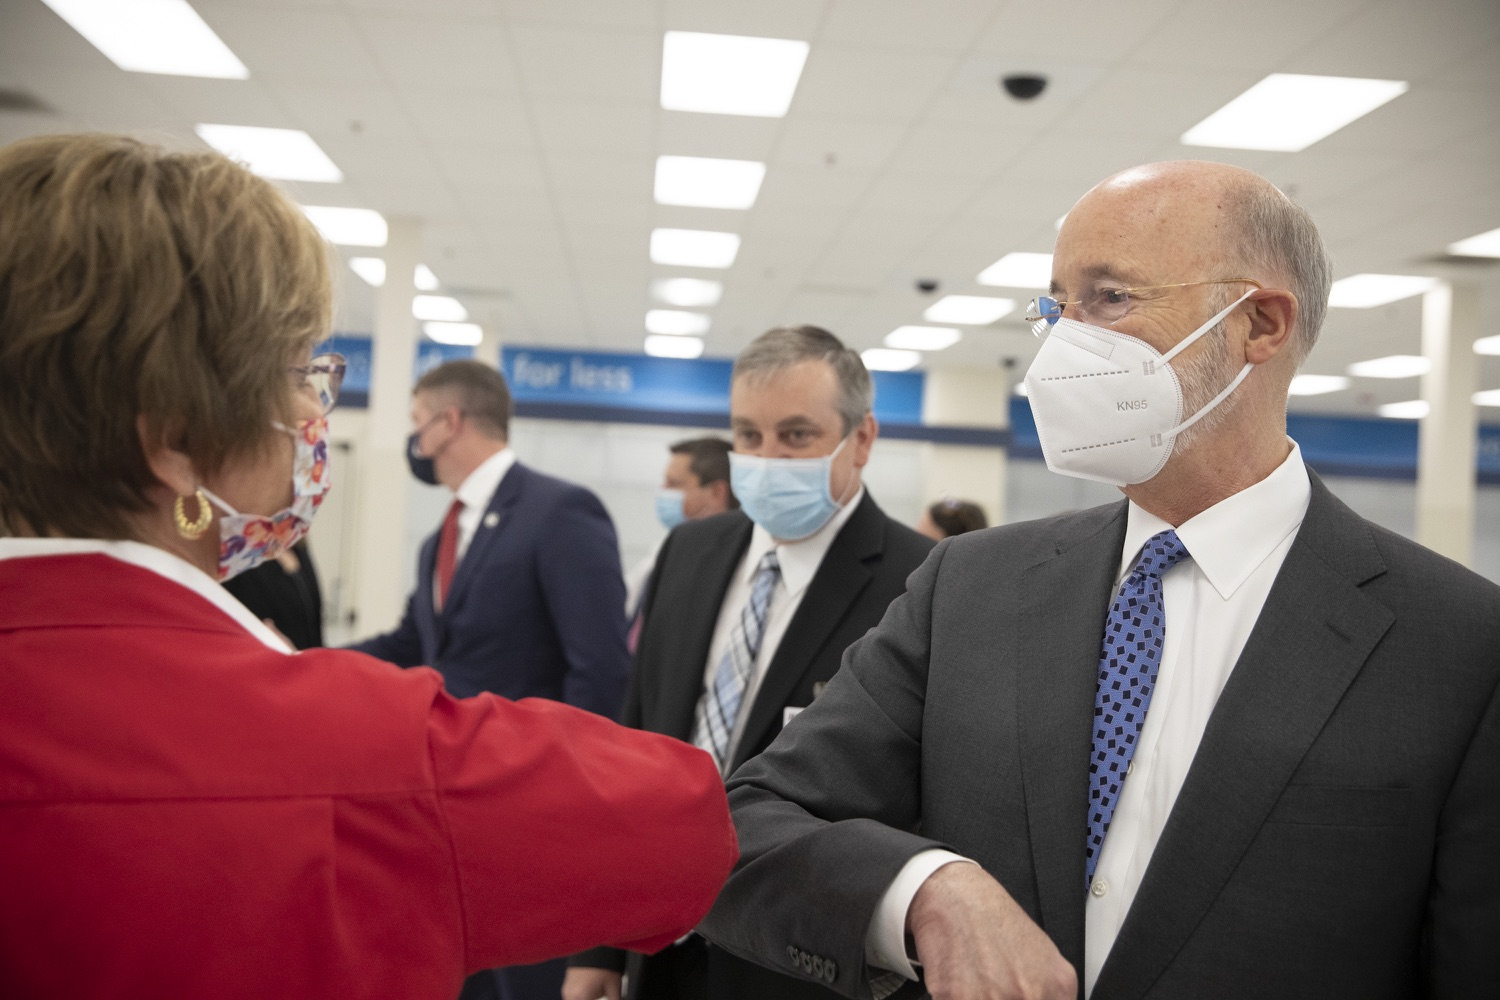 "<a href=""https://filesource.wostreaming.net/commonwealthofpa/photo/18712_gov_vaccines_dz_009.jpg"" target=""_blank"">⇣ Download Photo<br></a>Pennsylvania Governor Tom Wolf touring the vaccine facility with  Brook Ward, Washington Health System CEO & President and Pennsylvania State Representative Tim O'Neal.Continuing to visit COVID-19 vaccine clinics around the state, Governor Tom Wolf toured a clinic at the Washington Crown Center in Washington County today. The clinic is one of three operated by the Washington Health System (WHS) serving rural communities in southwestern Pennsylvania.  North Franklin Township, PA  April 28, 2021"